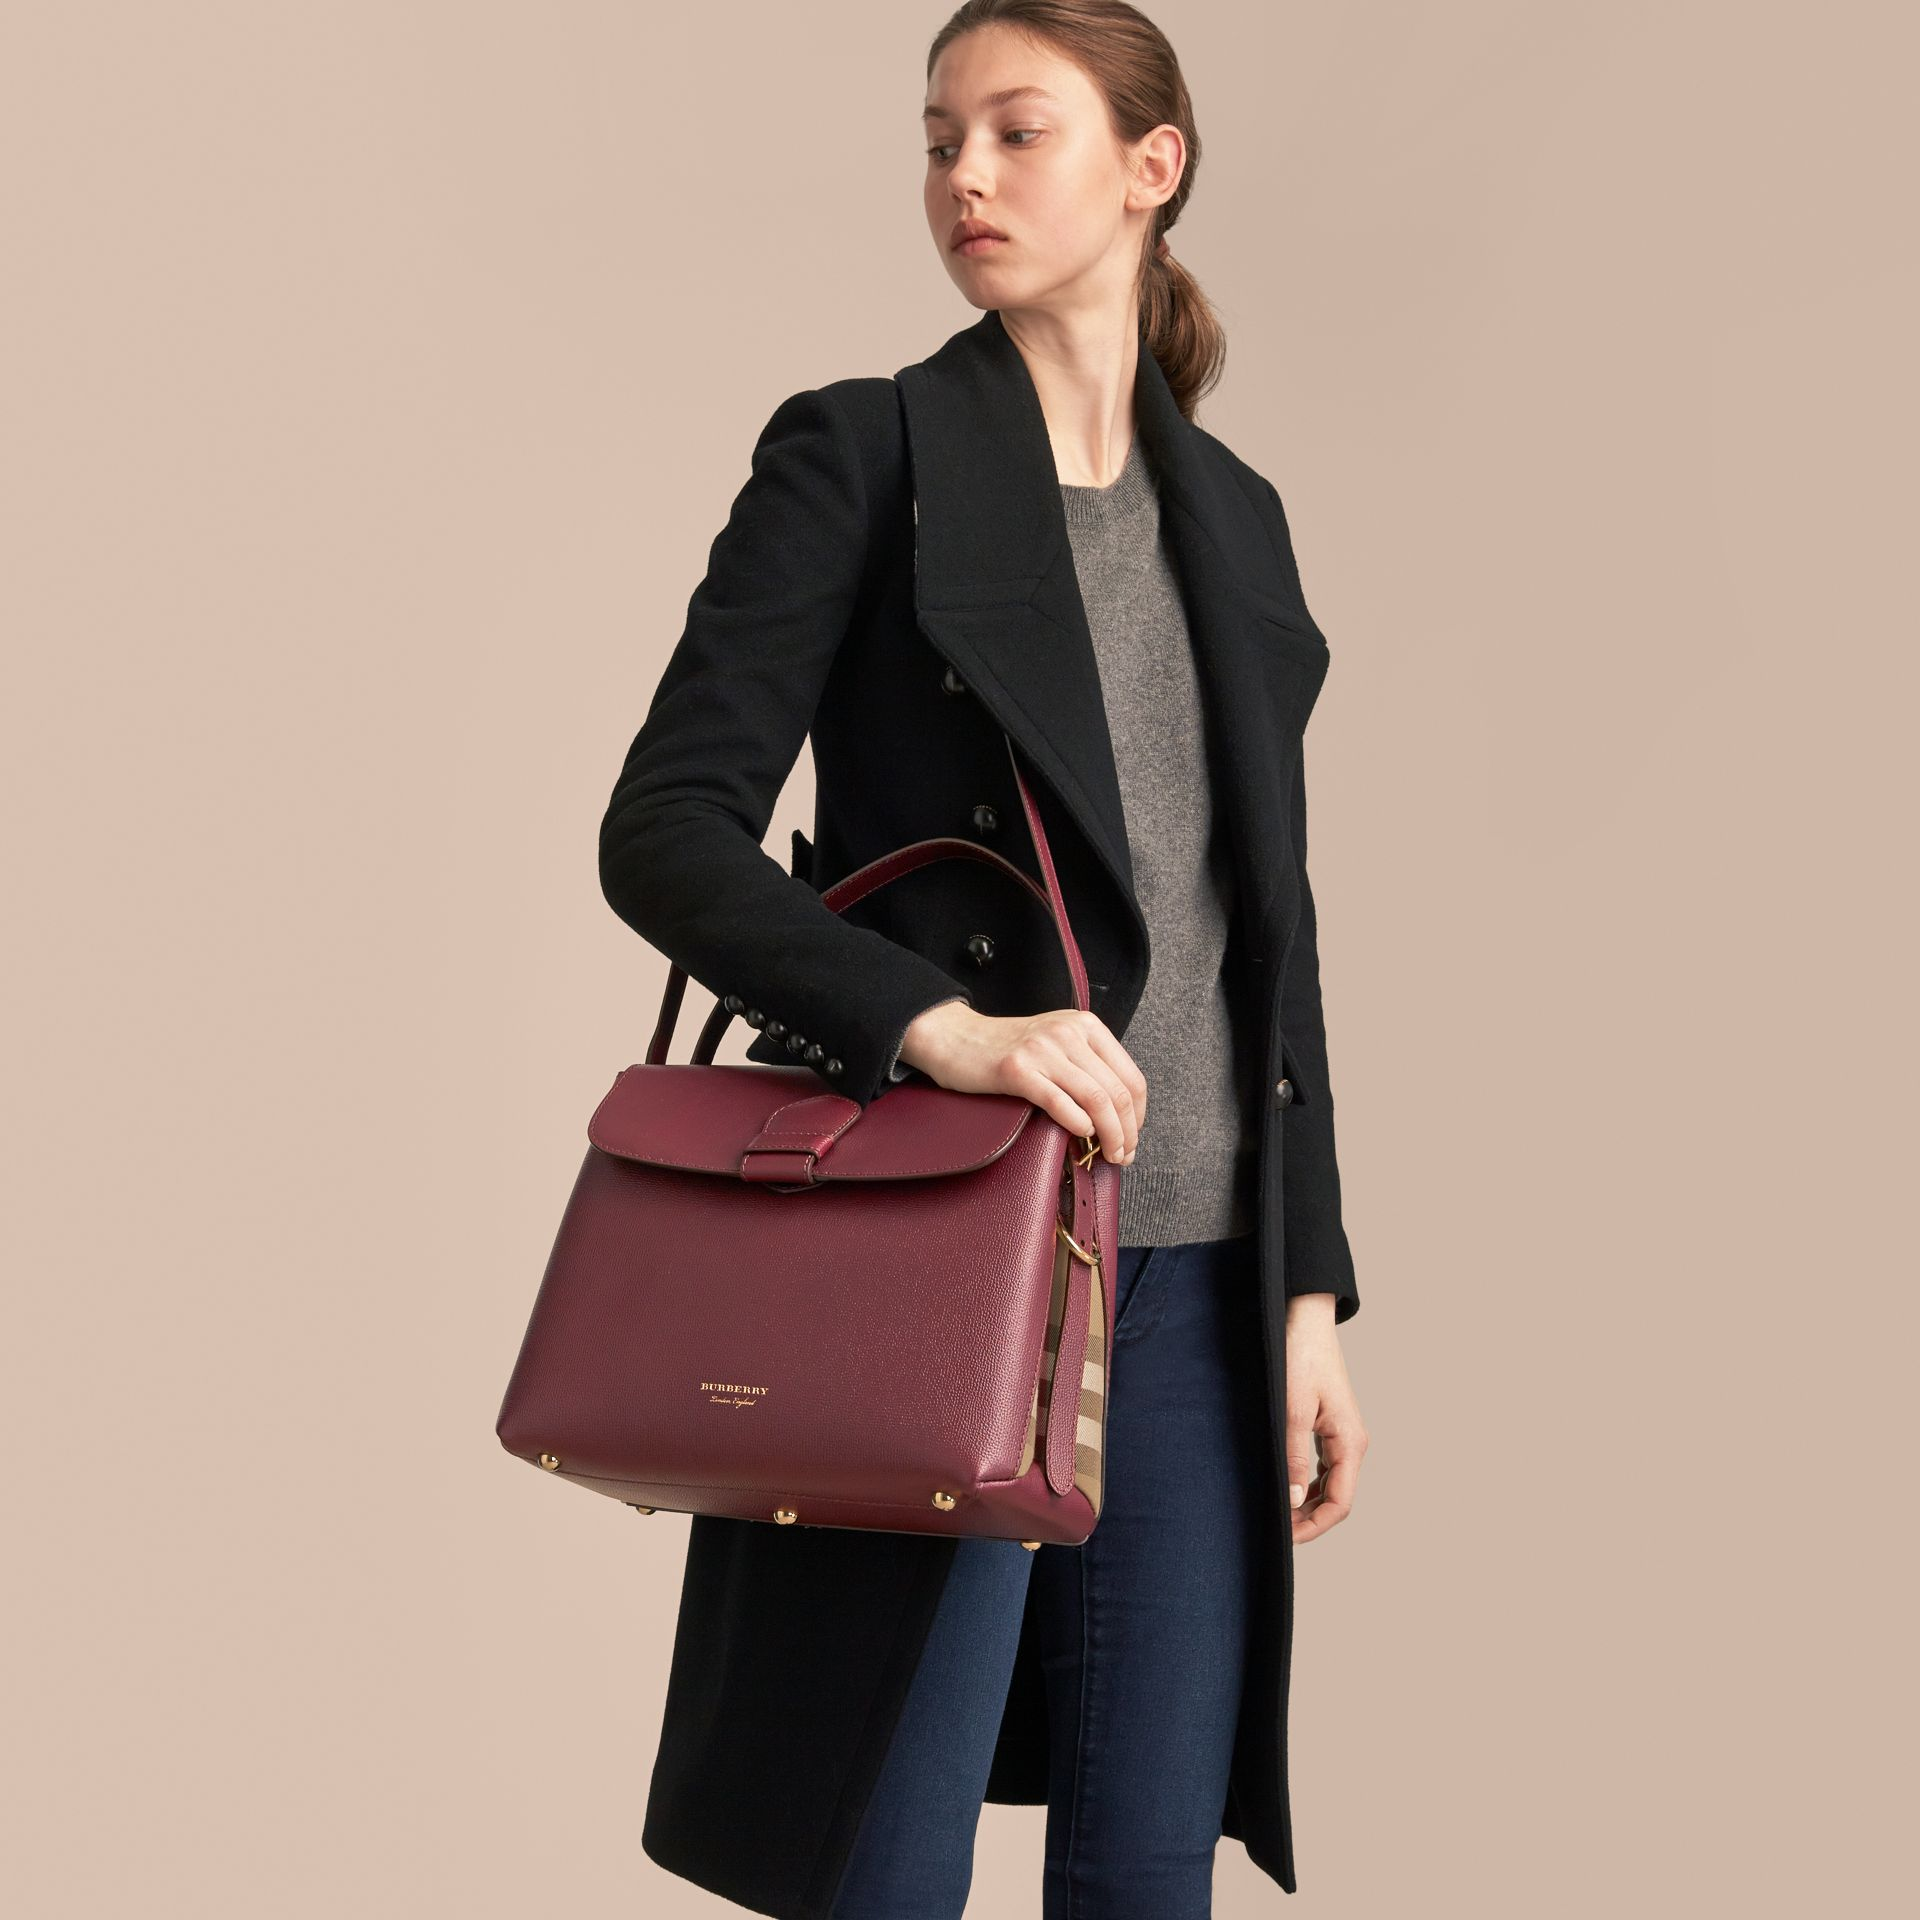 Medium Grainy Leather and House Check Tote Bag in Mahogany Red - Women | Burberry Australia - gallery image 3